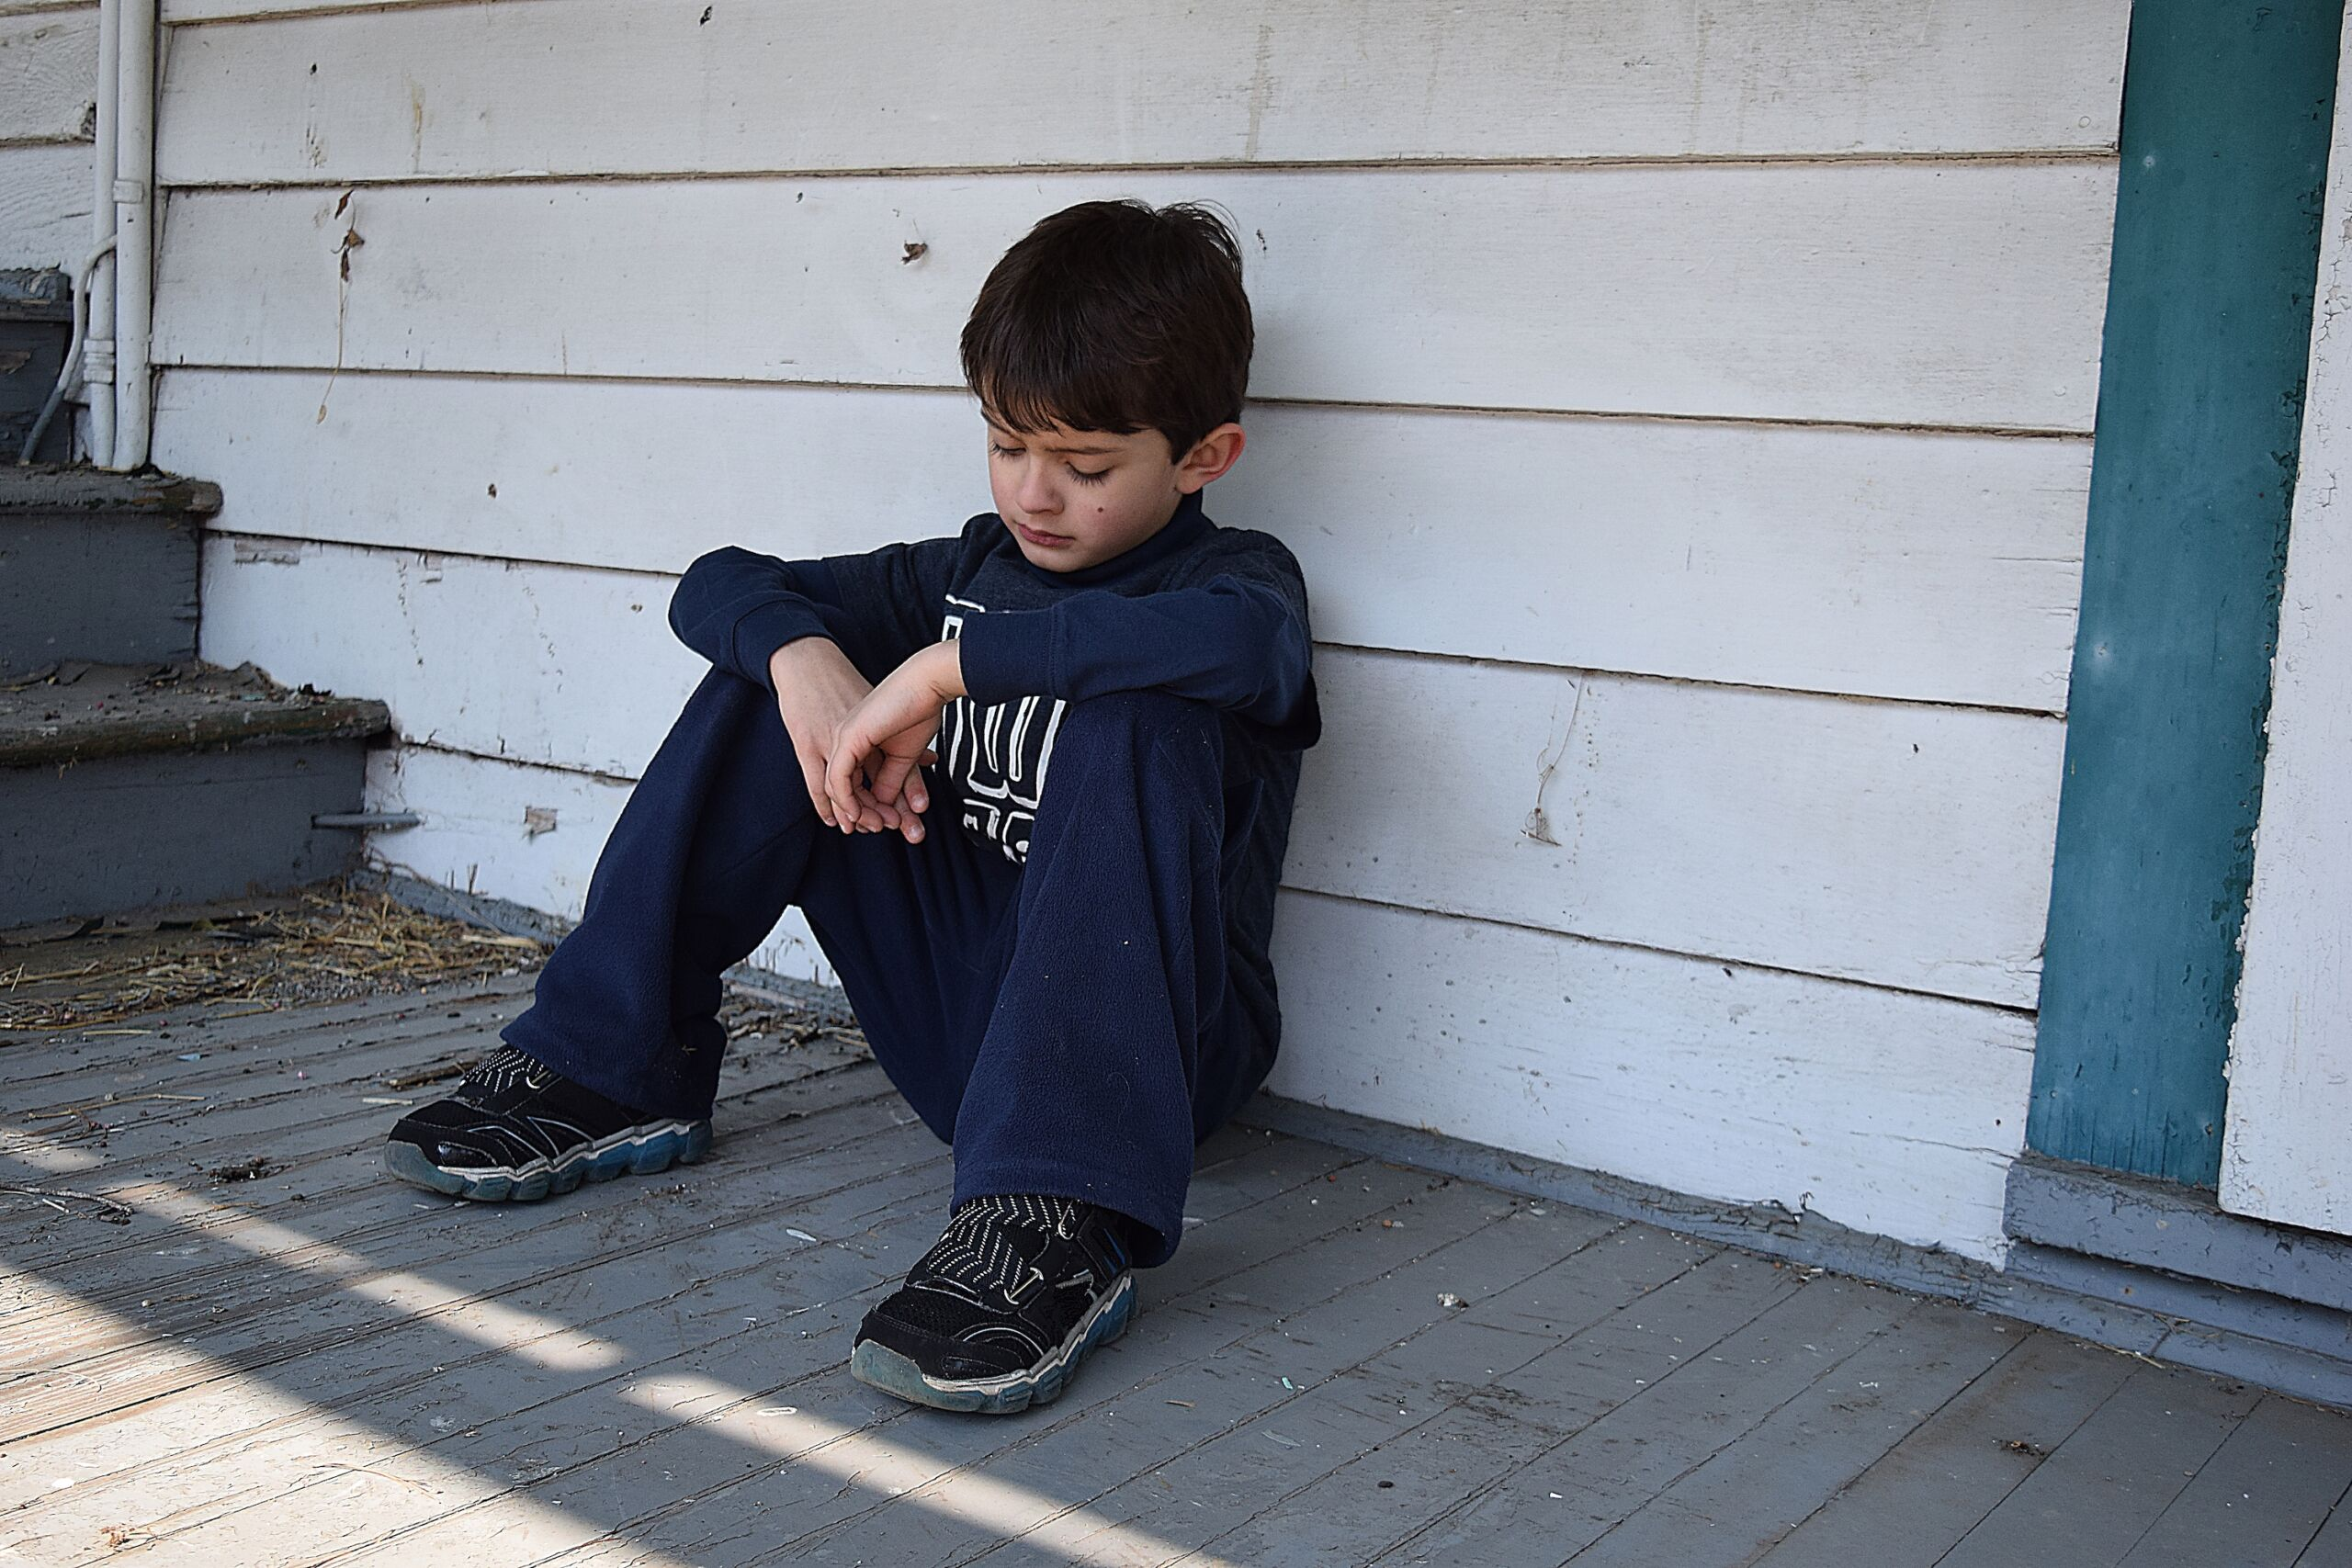 Male child around 6-10 years of age sitting down out on a porch. His head is down looking upset